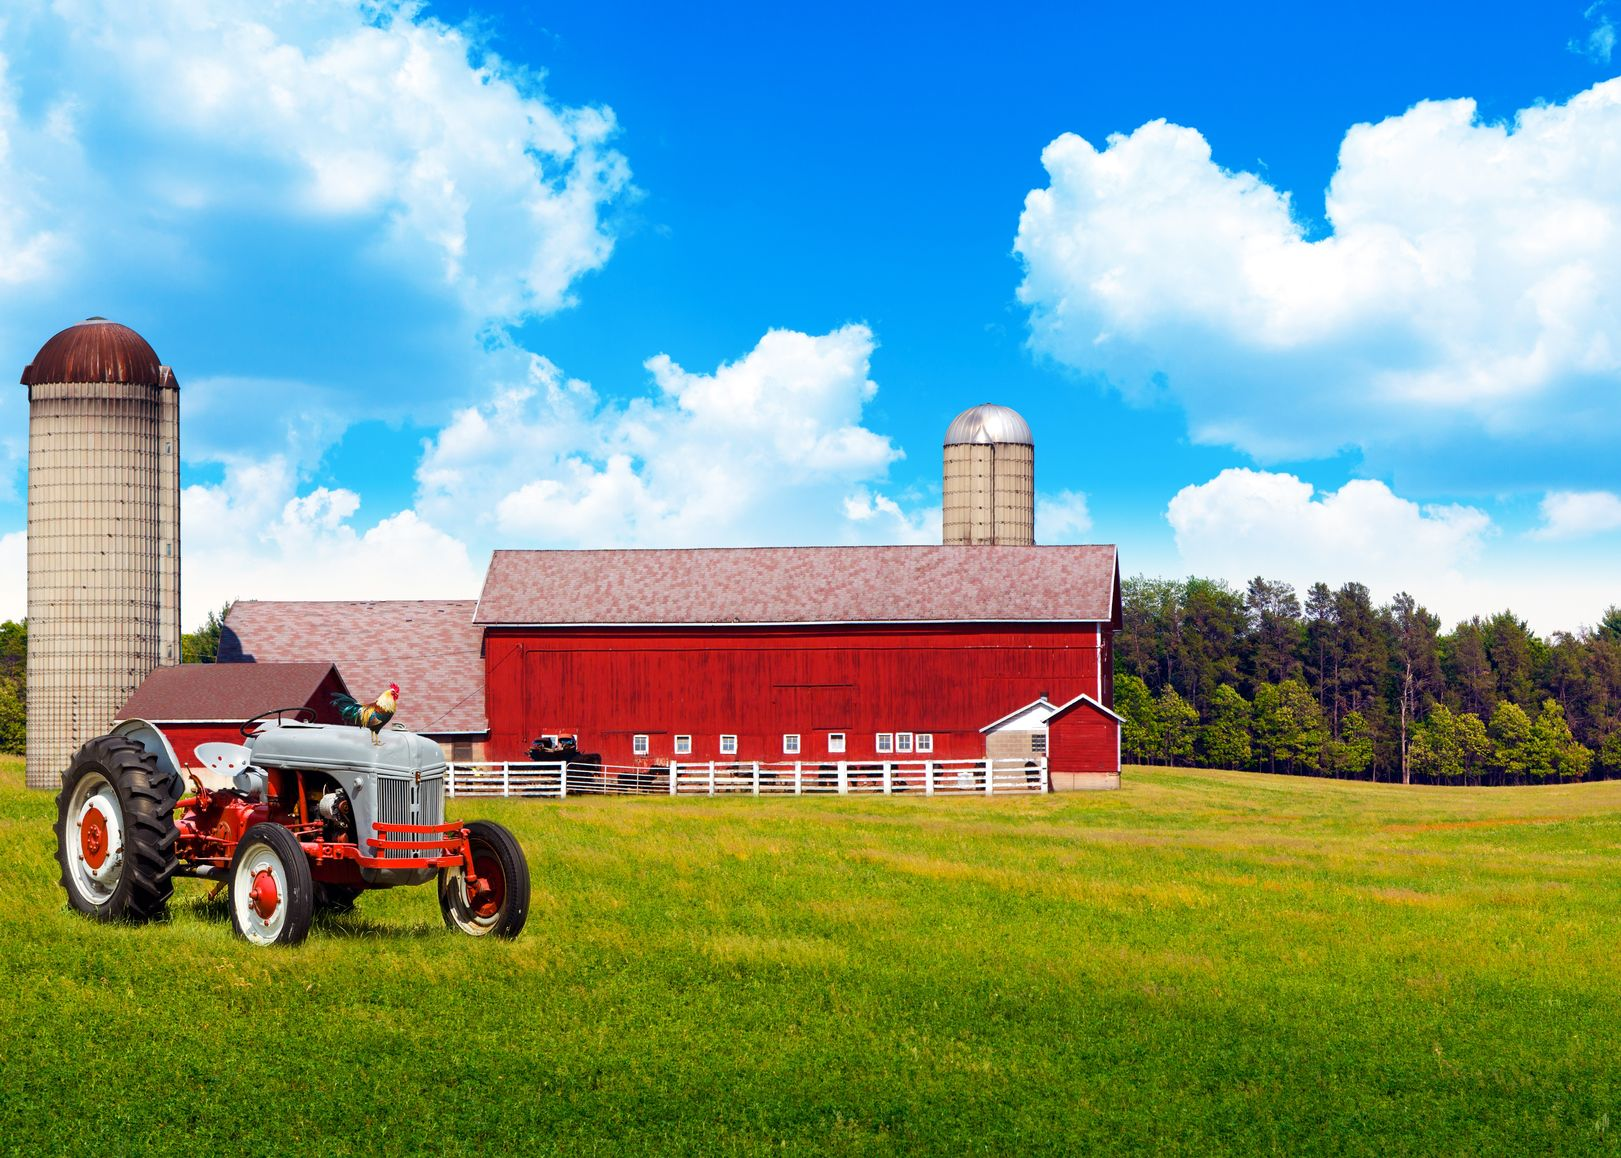 Houston Farm & Ranch Insurance